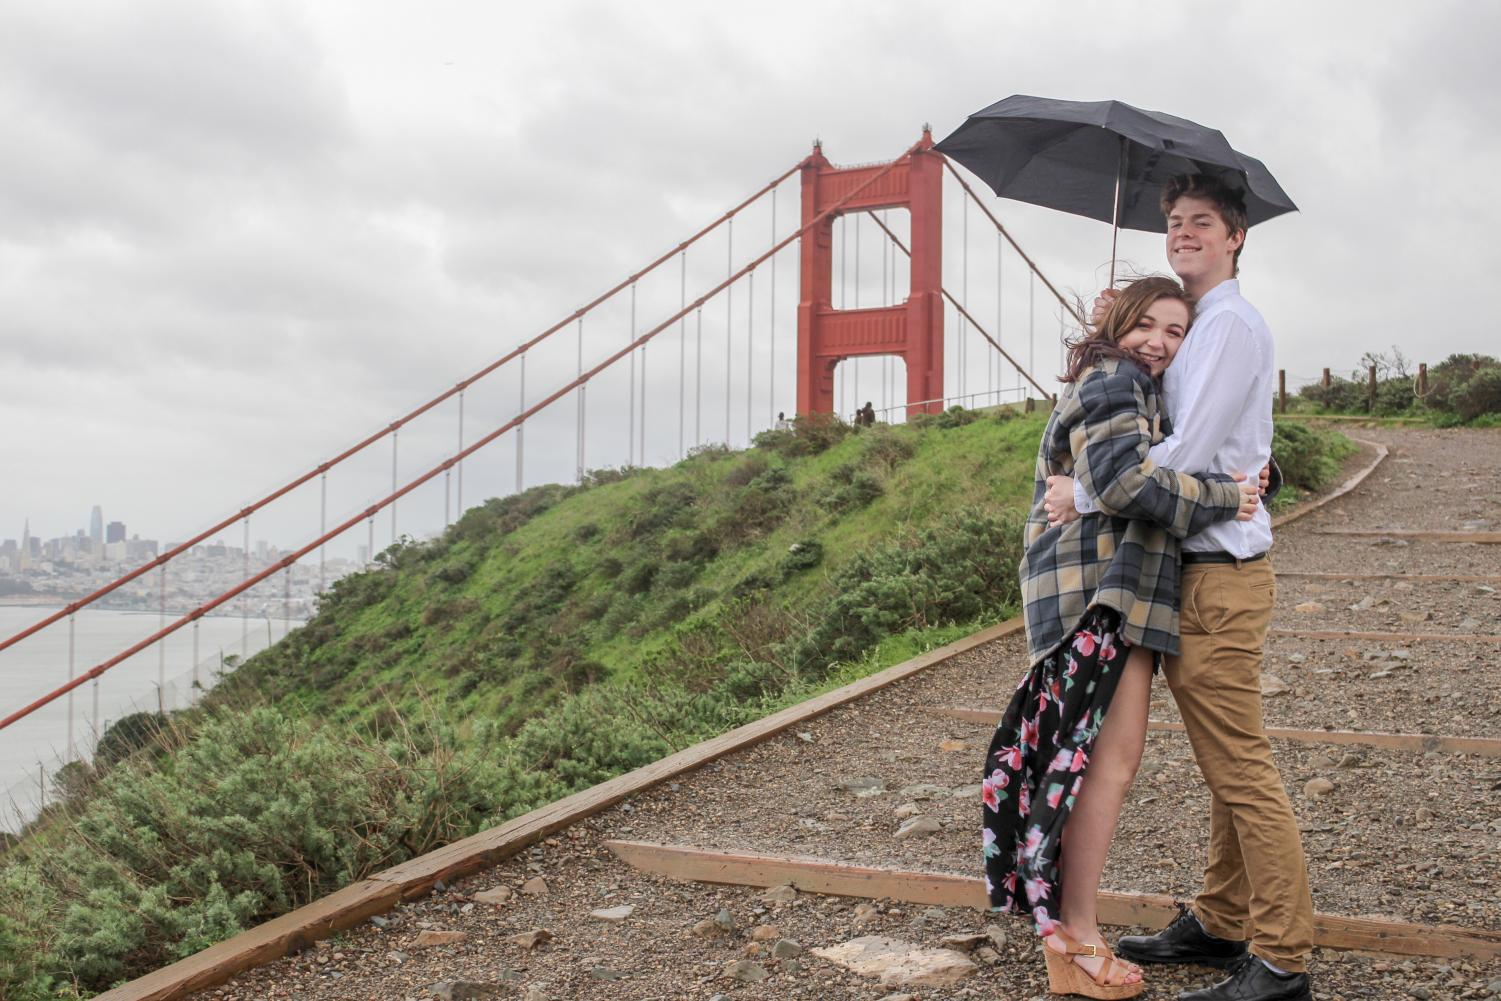 Lovers Jessica Rubin and Jacob Stenson taking in the view of the Golden Gate Bridge.